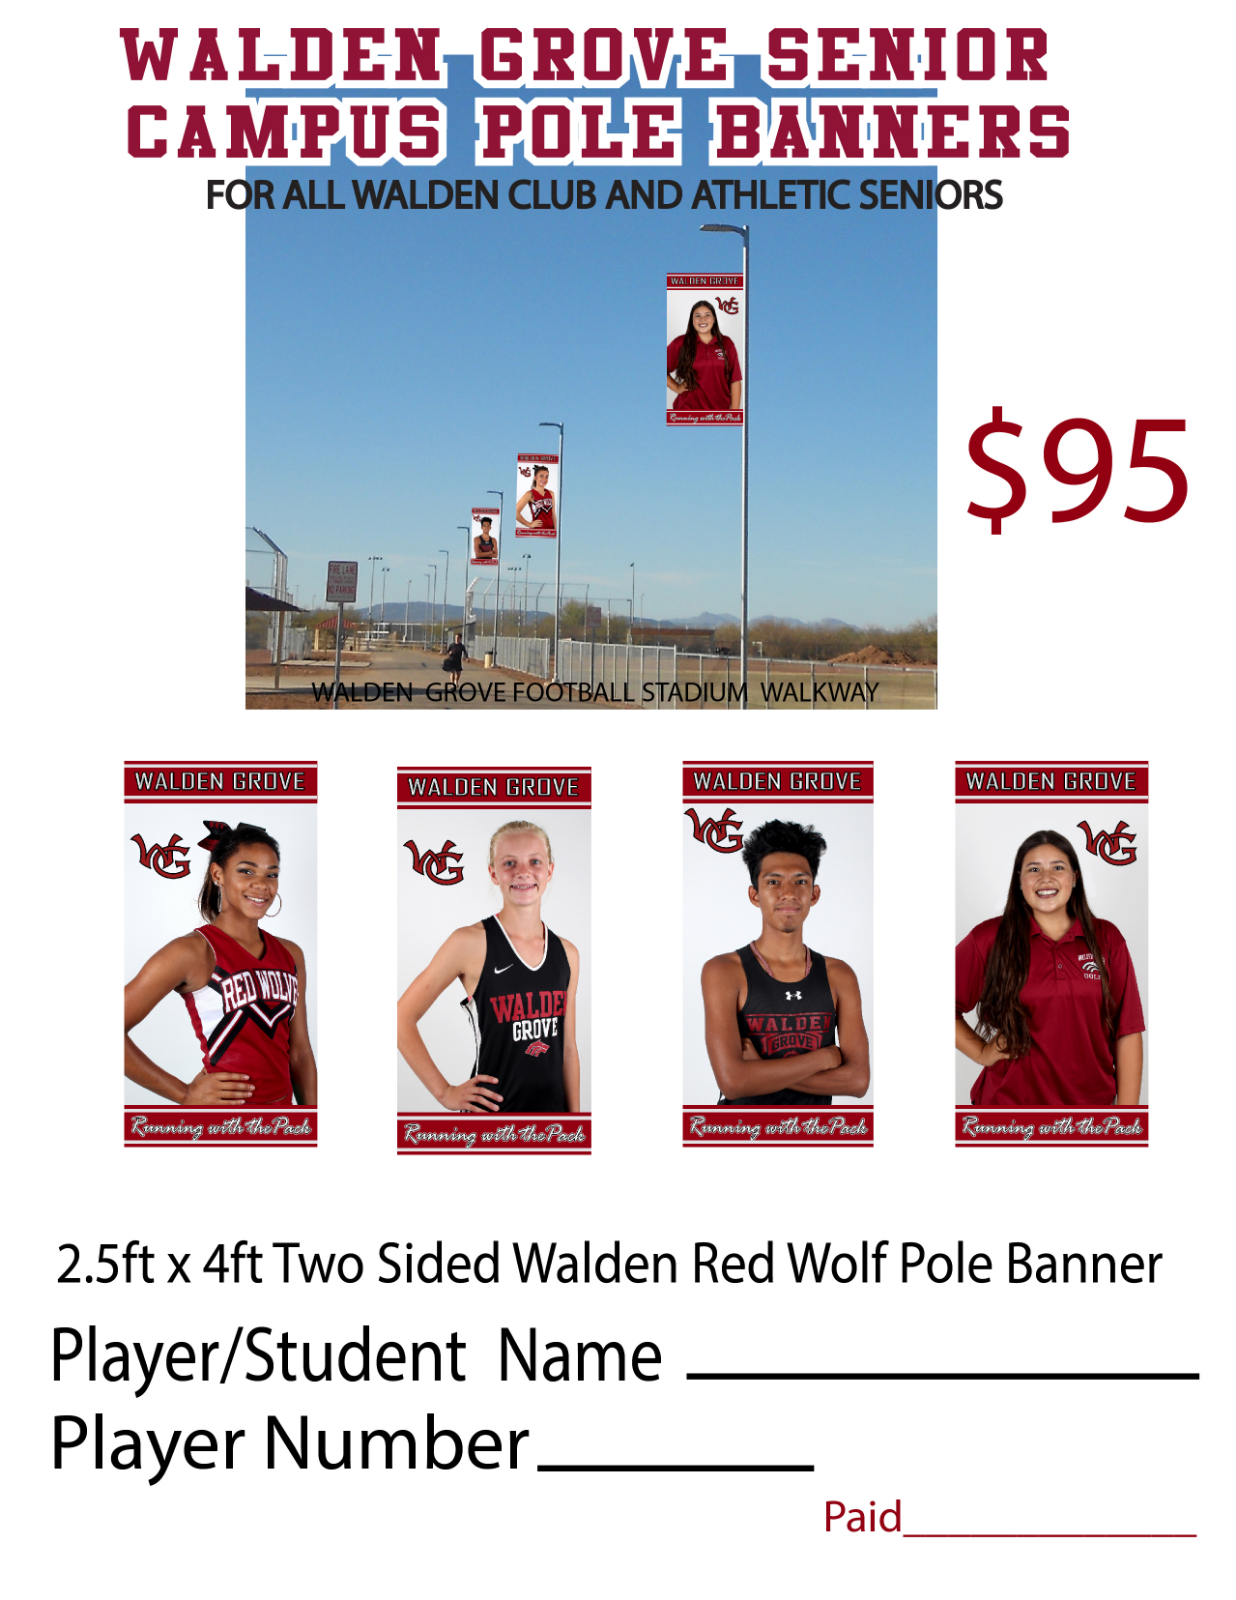 New Senior Banners Being Sold!